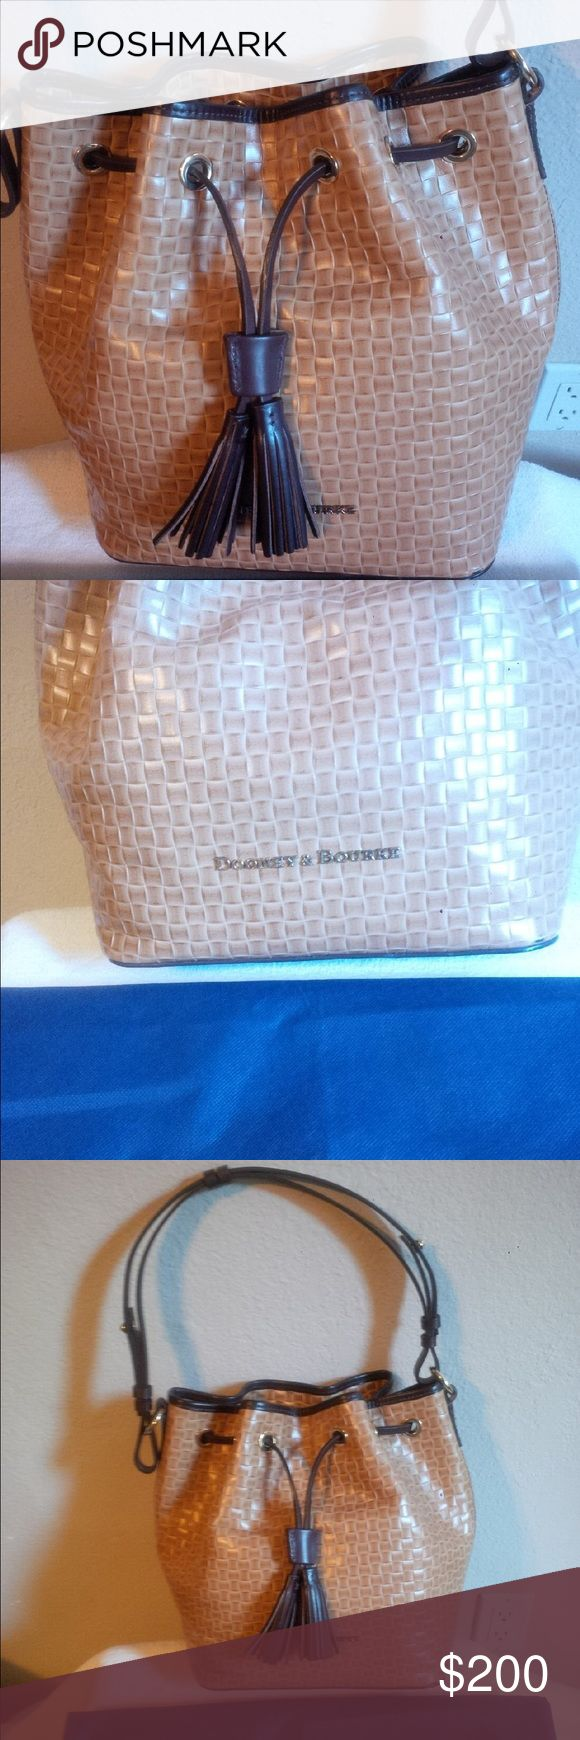 Dooney & Bourne Purse Woven genuine leather. handbag with key keeper and footed bottom comes with sleeper bag. Brand new only carried once. Dooney & Bourke Bags Shoulder Bags